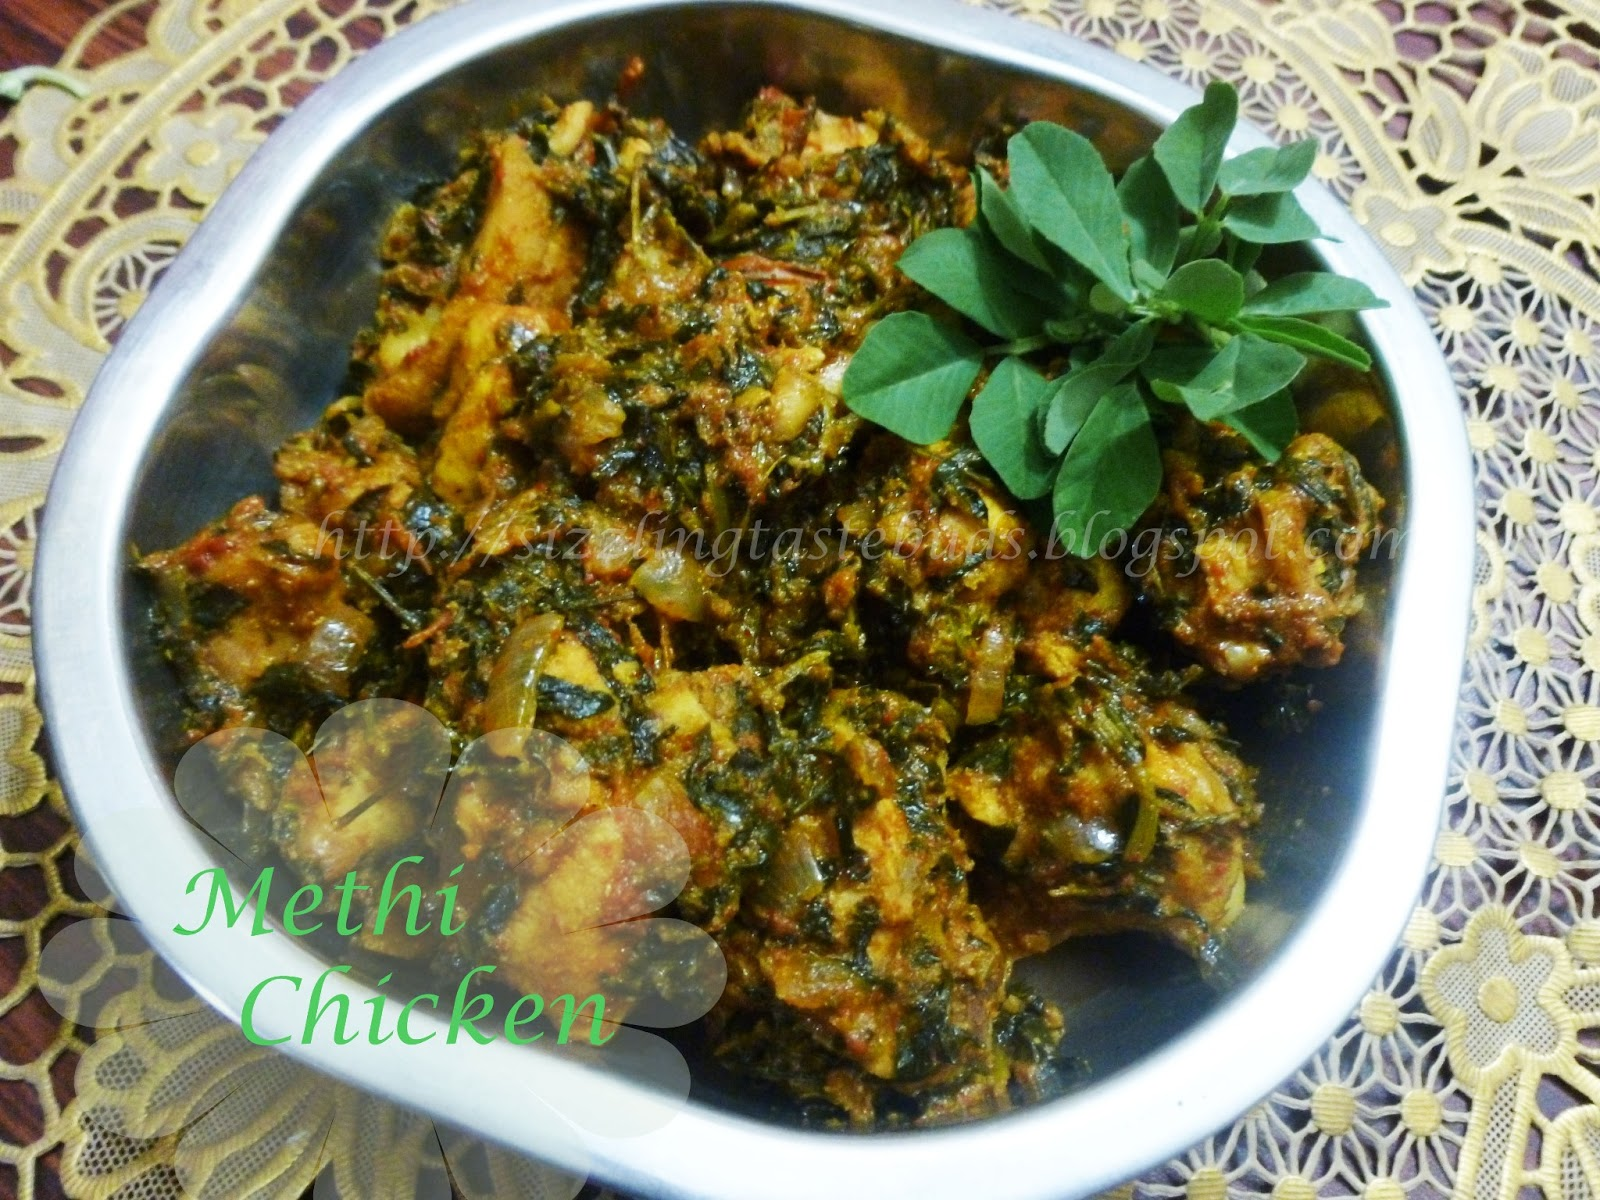 METHI CHICKEN / MURGH METHI - Chicken Curry with Fenugreek Leaves